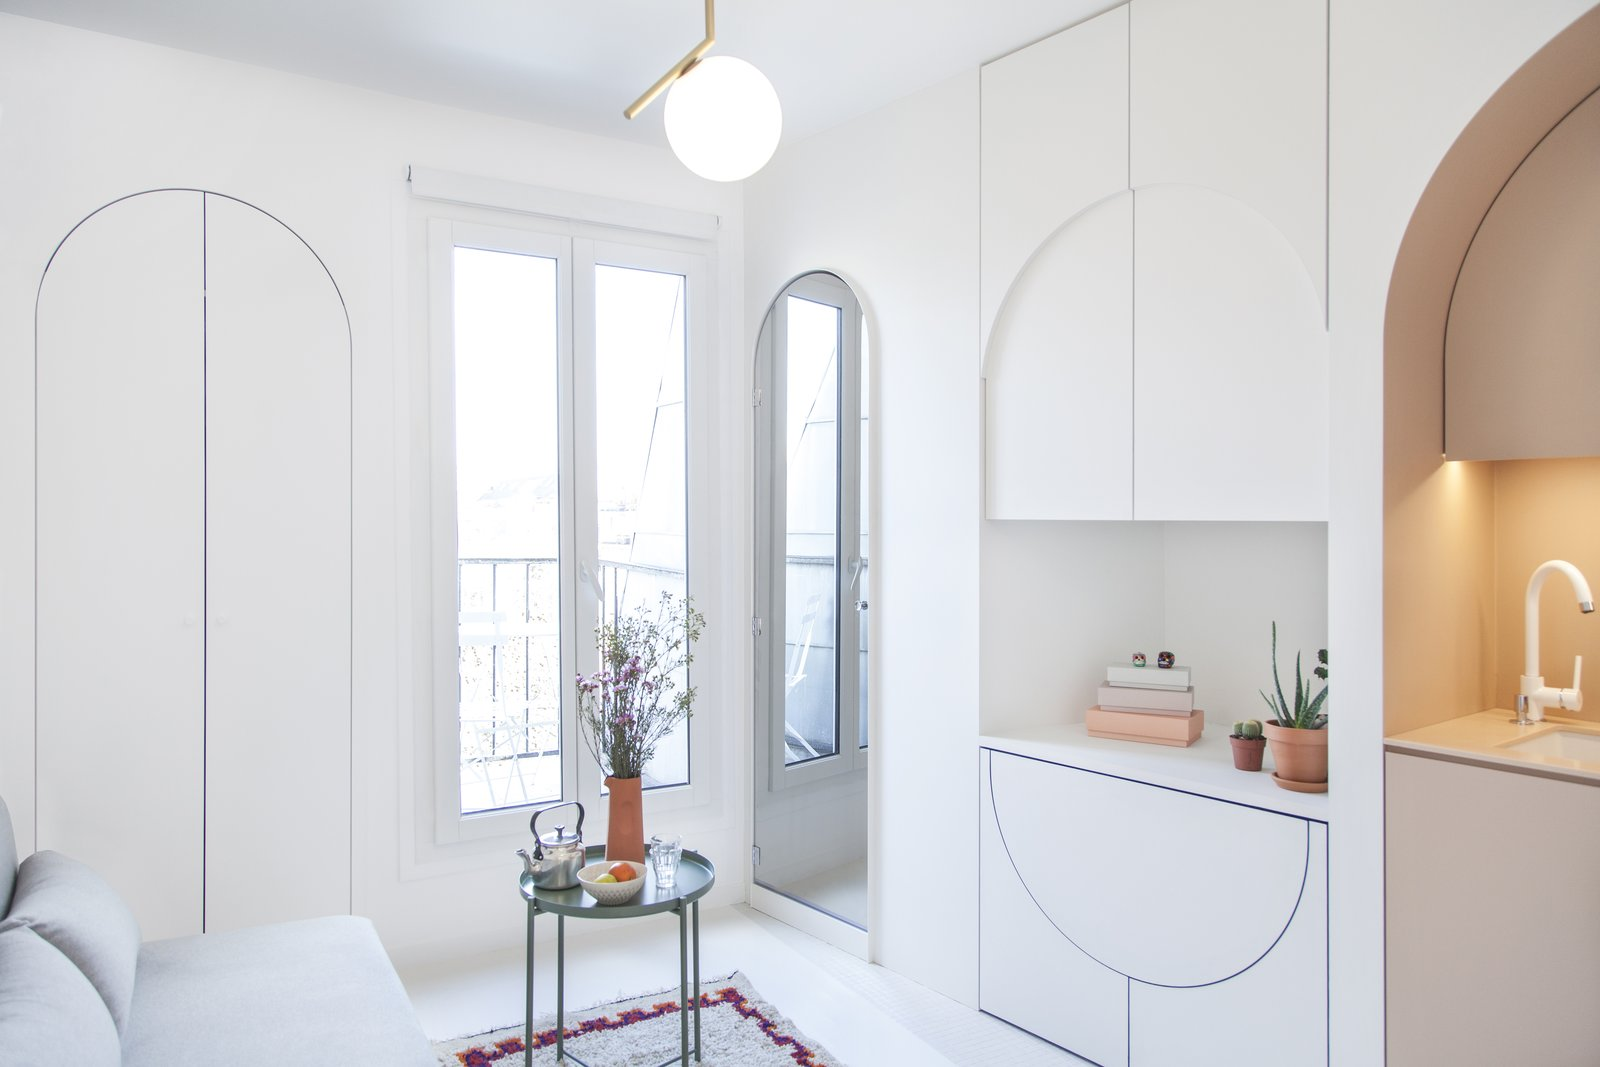 This Tiny Home in Paris Unfolds Like a Children\'s Pop-Up Book - Dwell